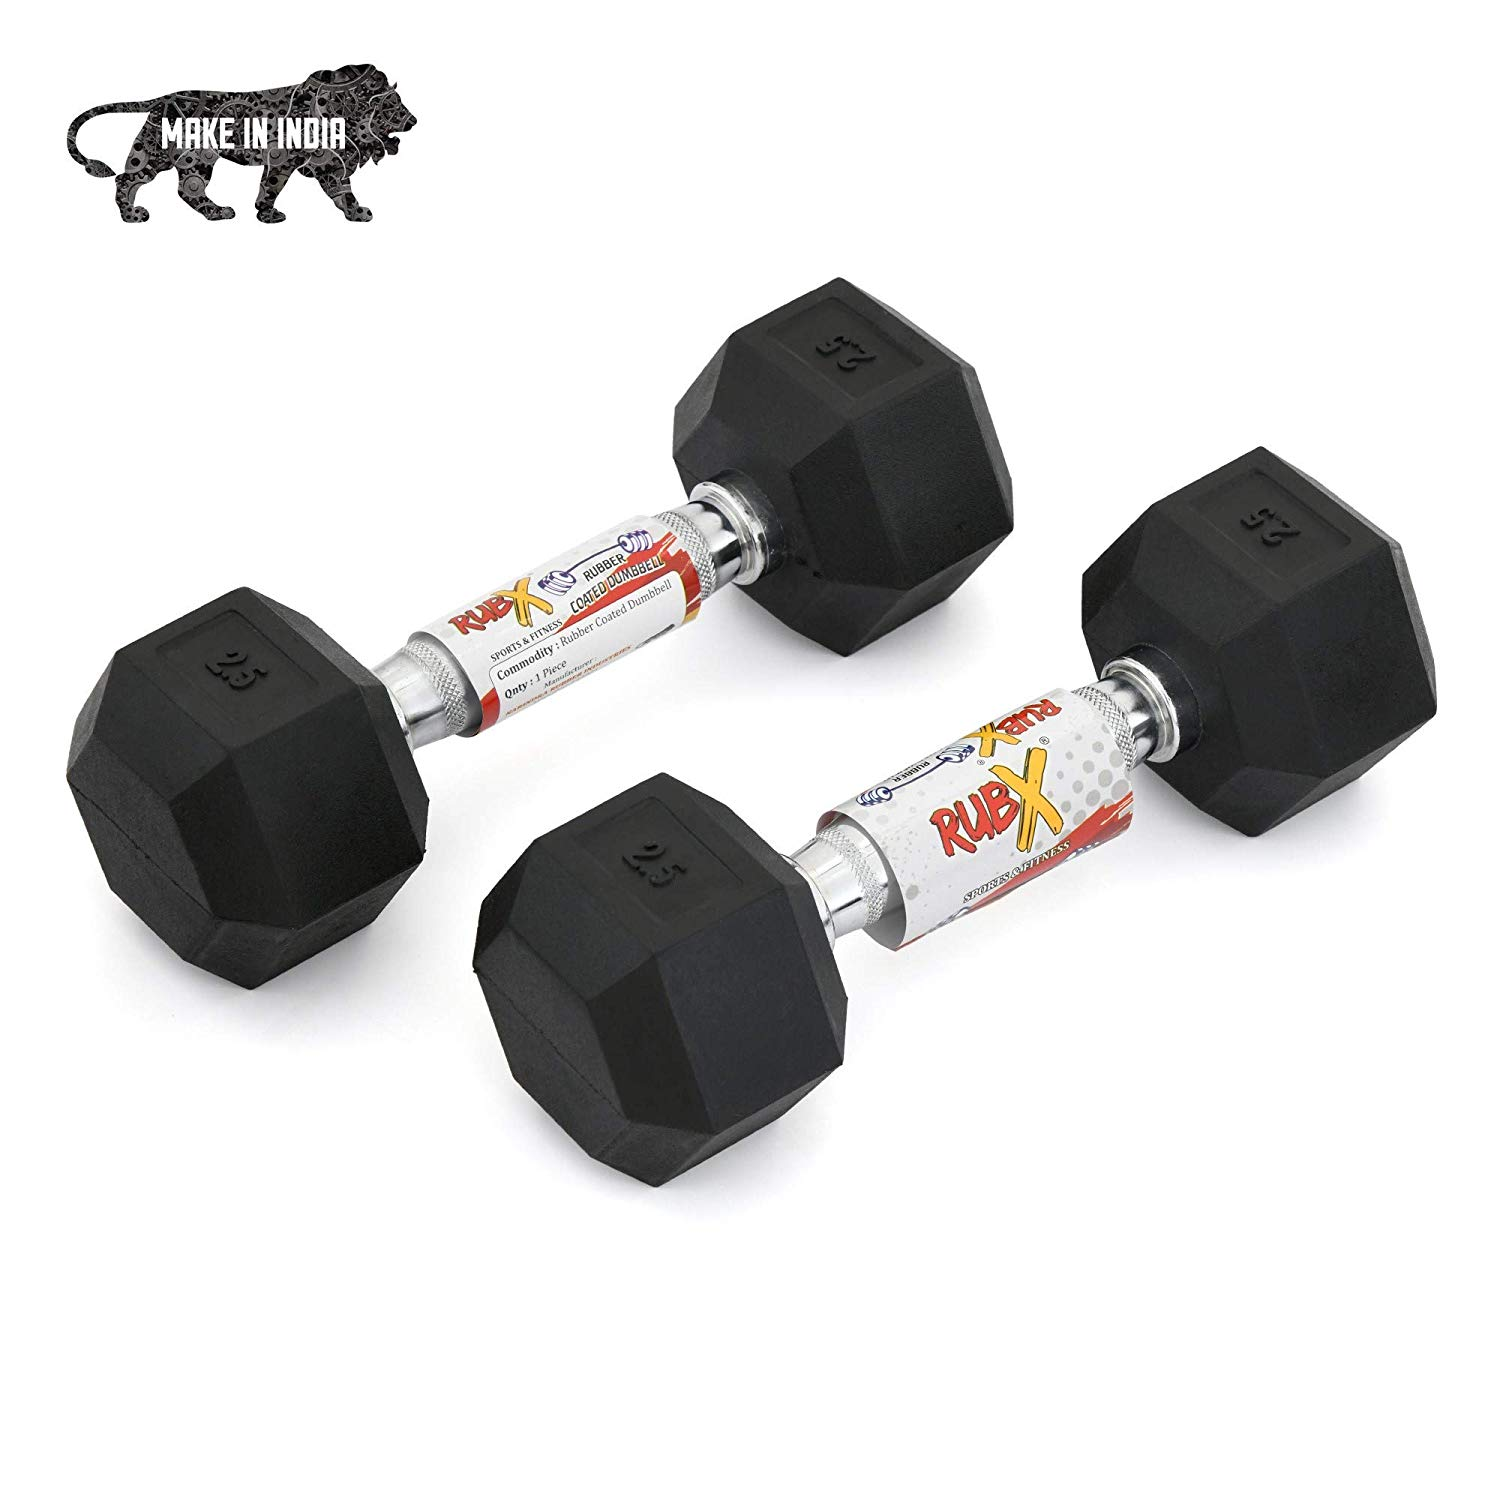 RUBX Professional Exercise Rubber Coated Hex Dumbbells